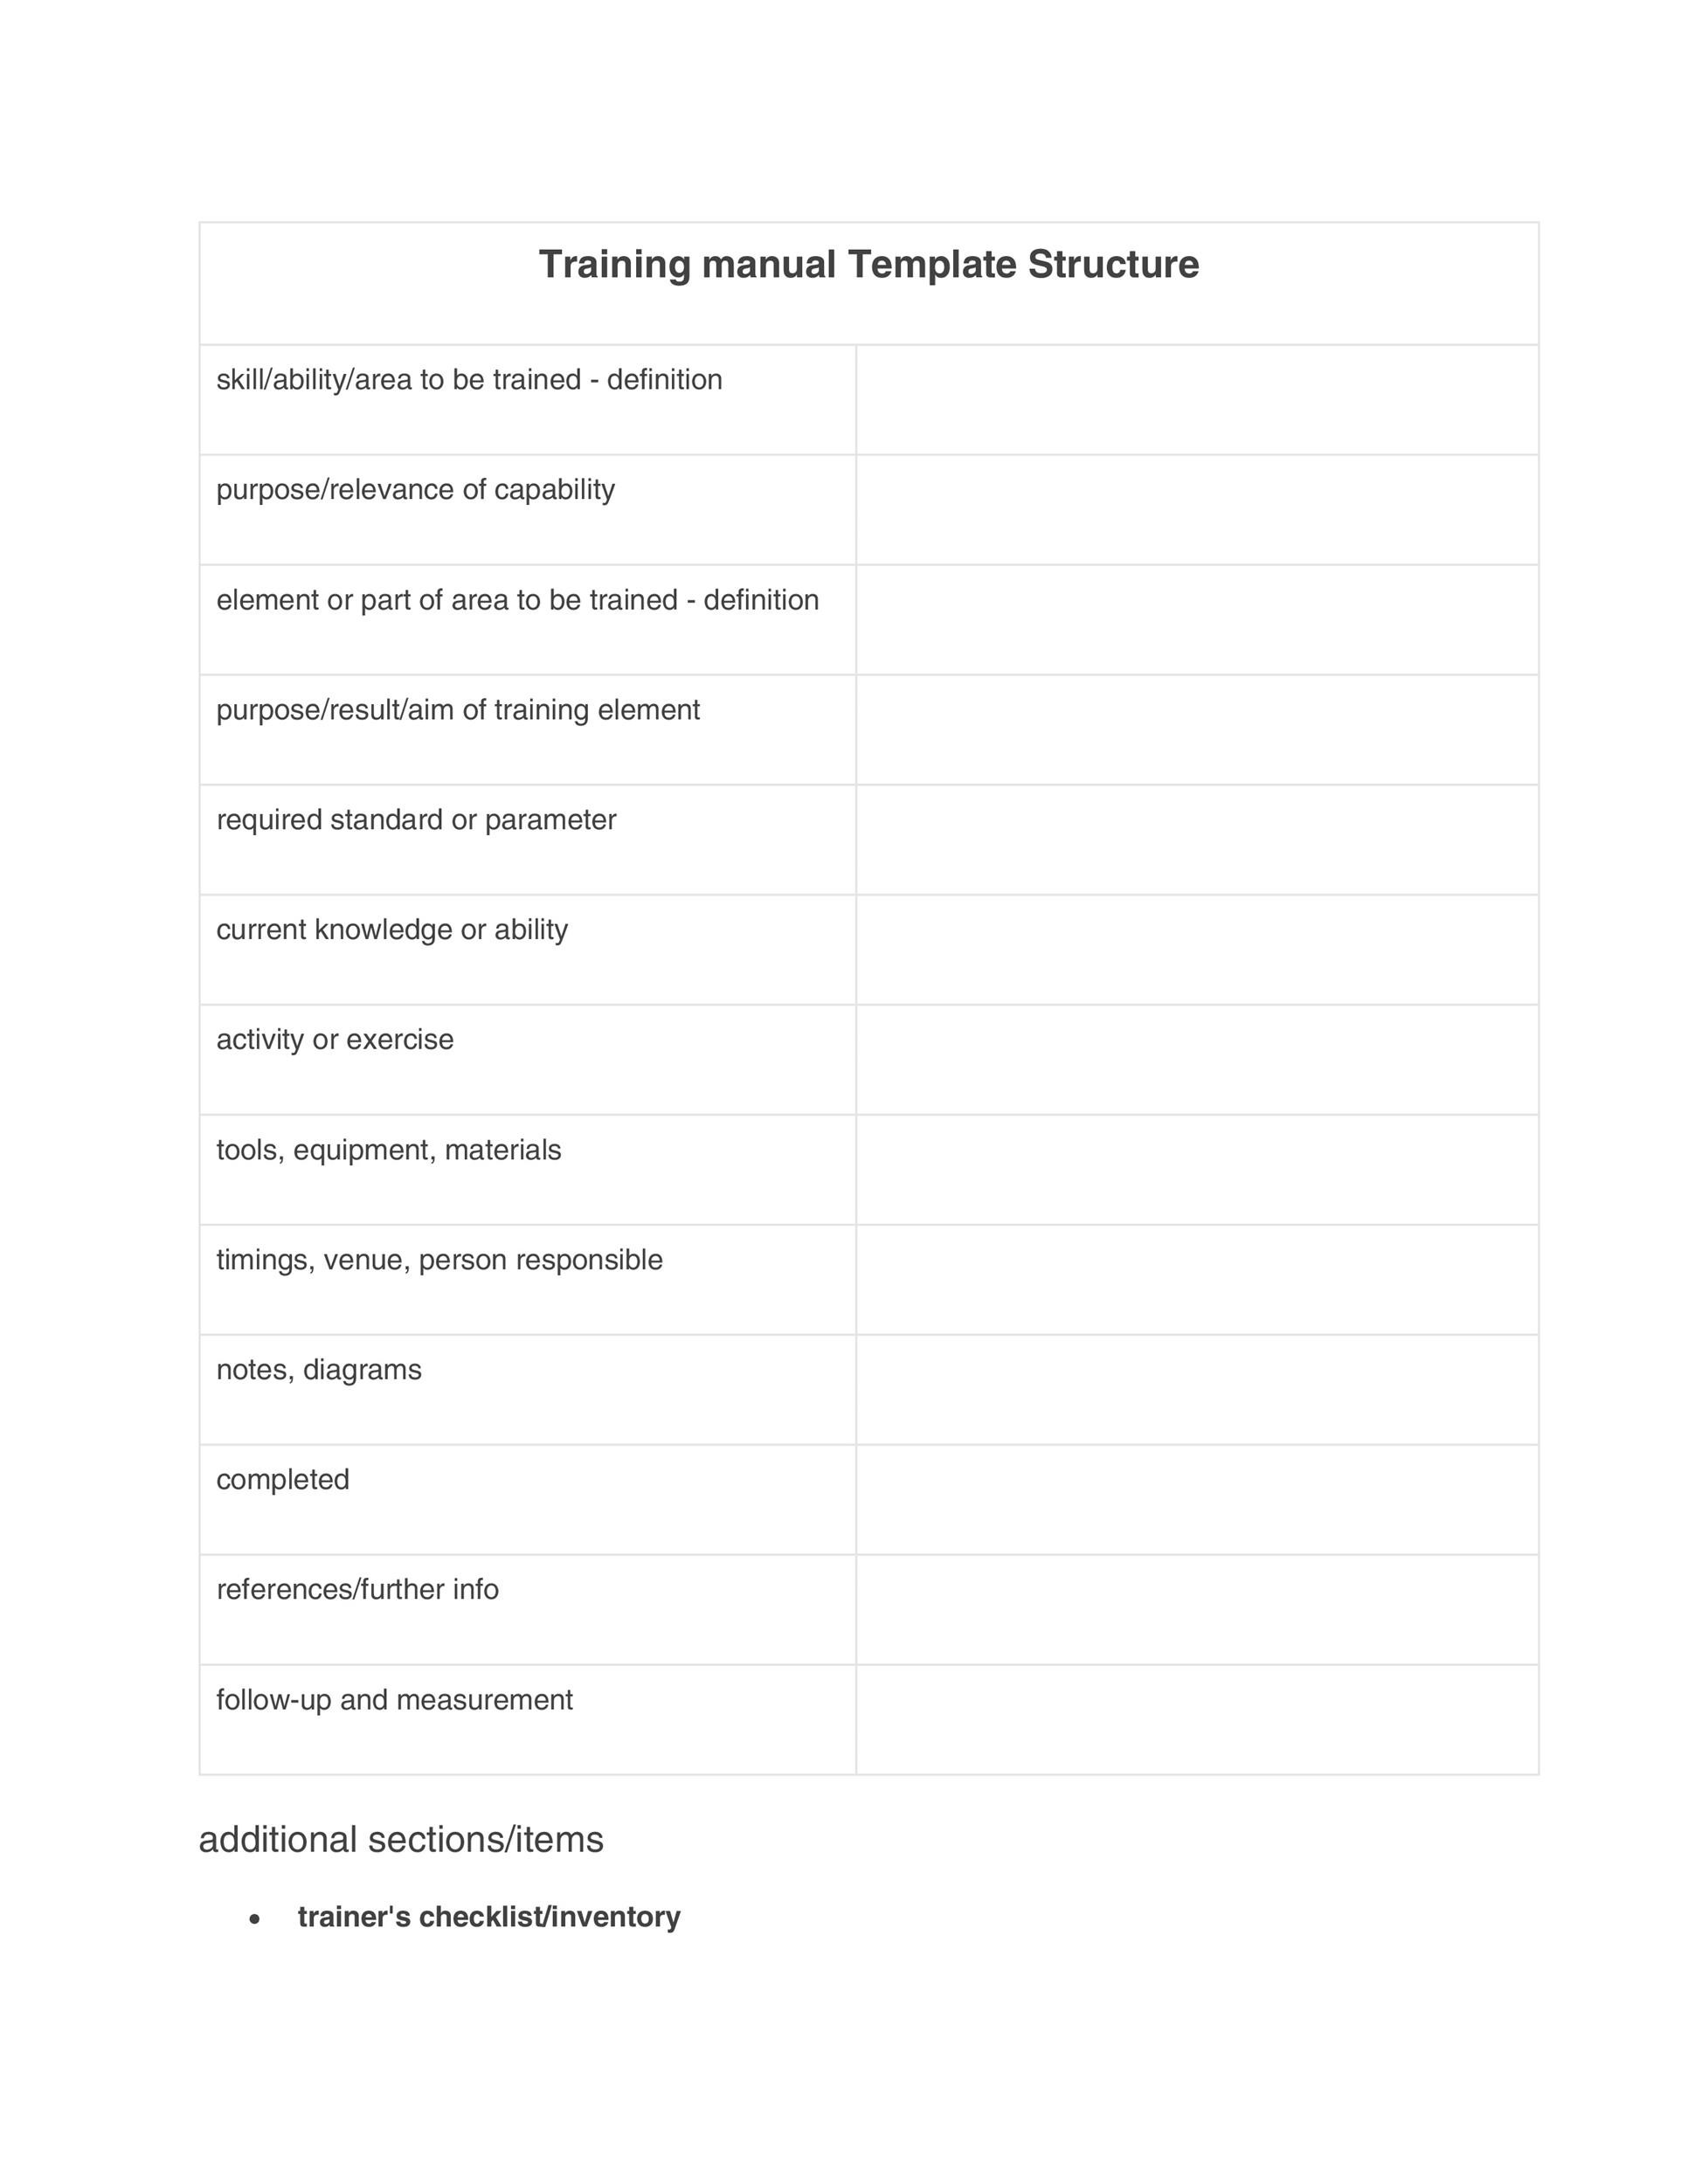 Free training manual template 04